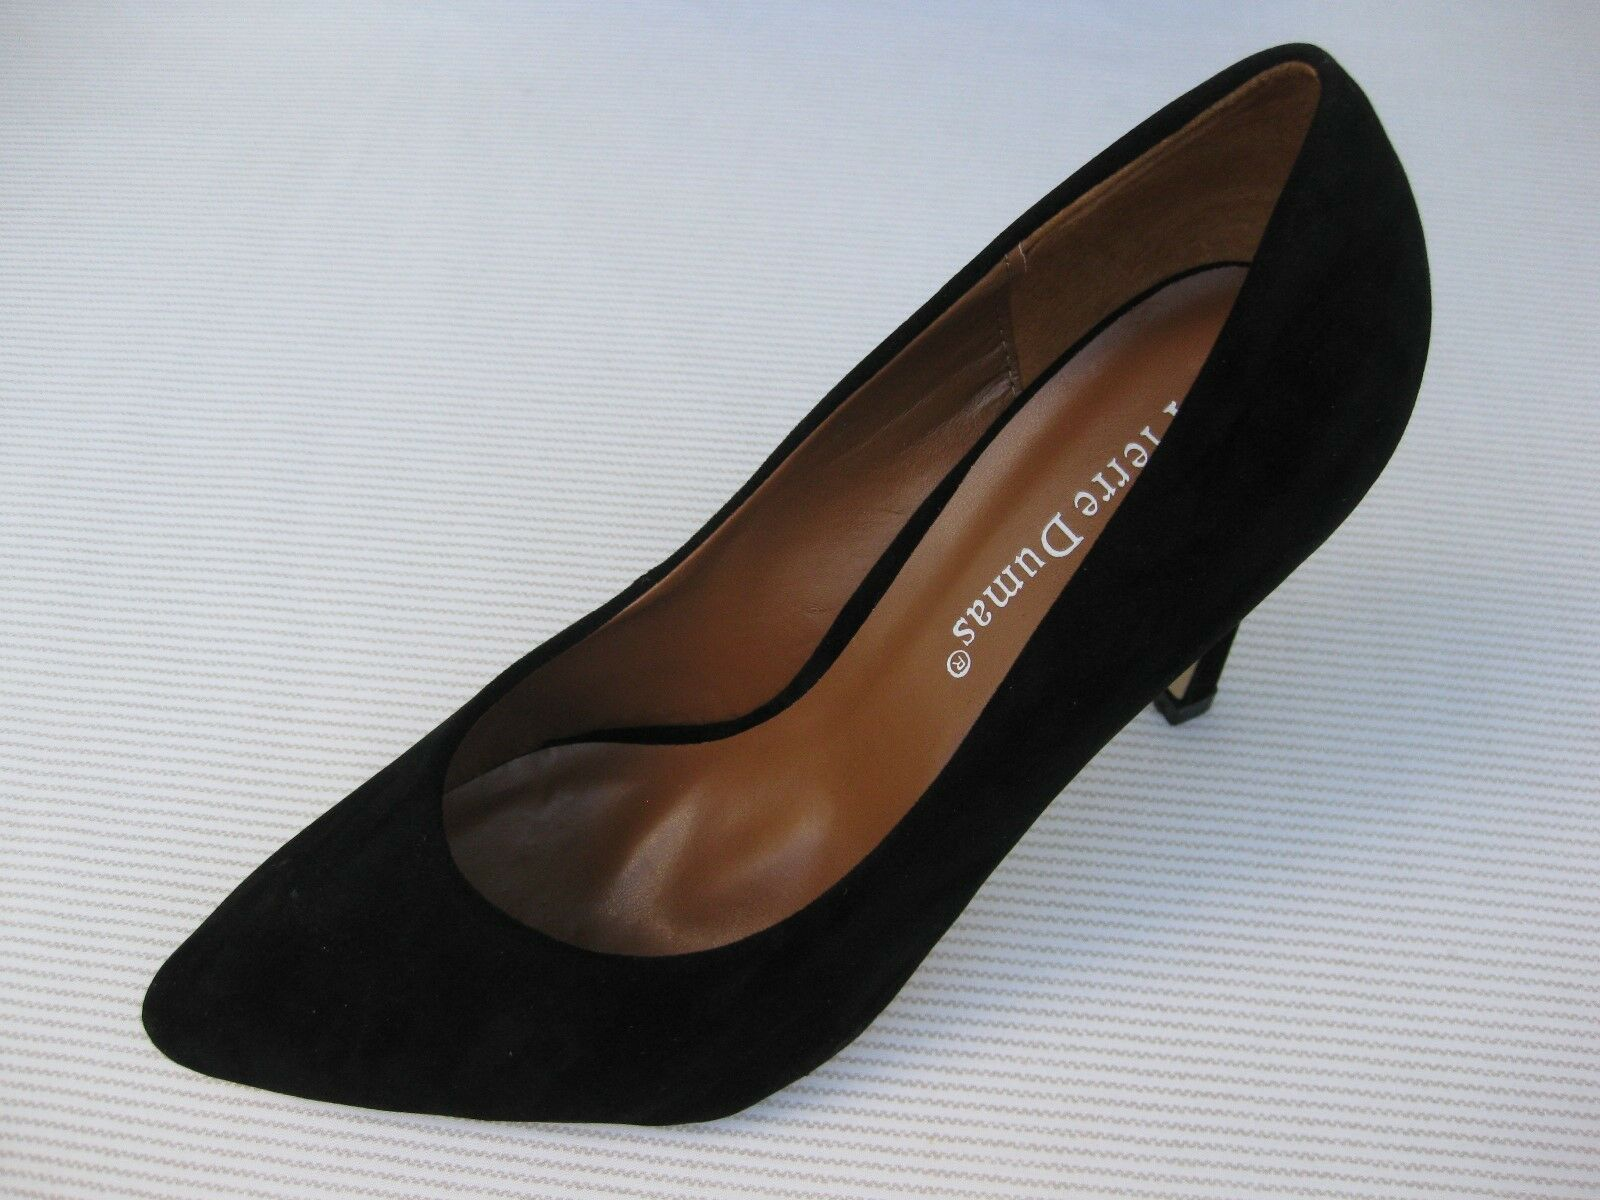 Pierre Dumas Womens Black Shoes NEW $50 Alessia Black Womens Suede Pump 9 M 17a19c